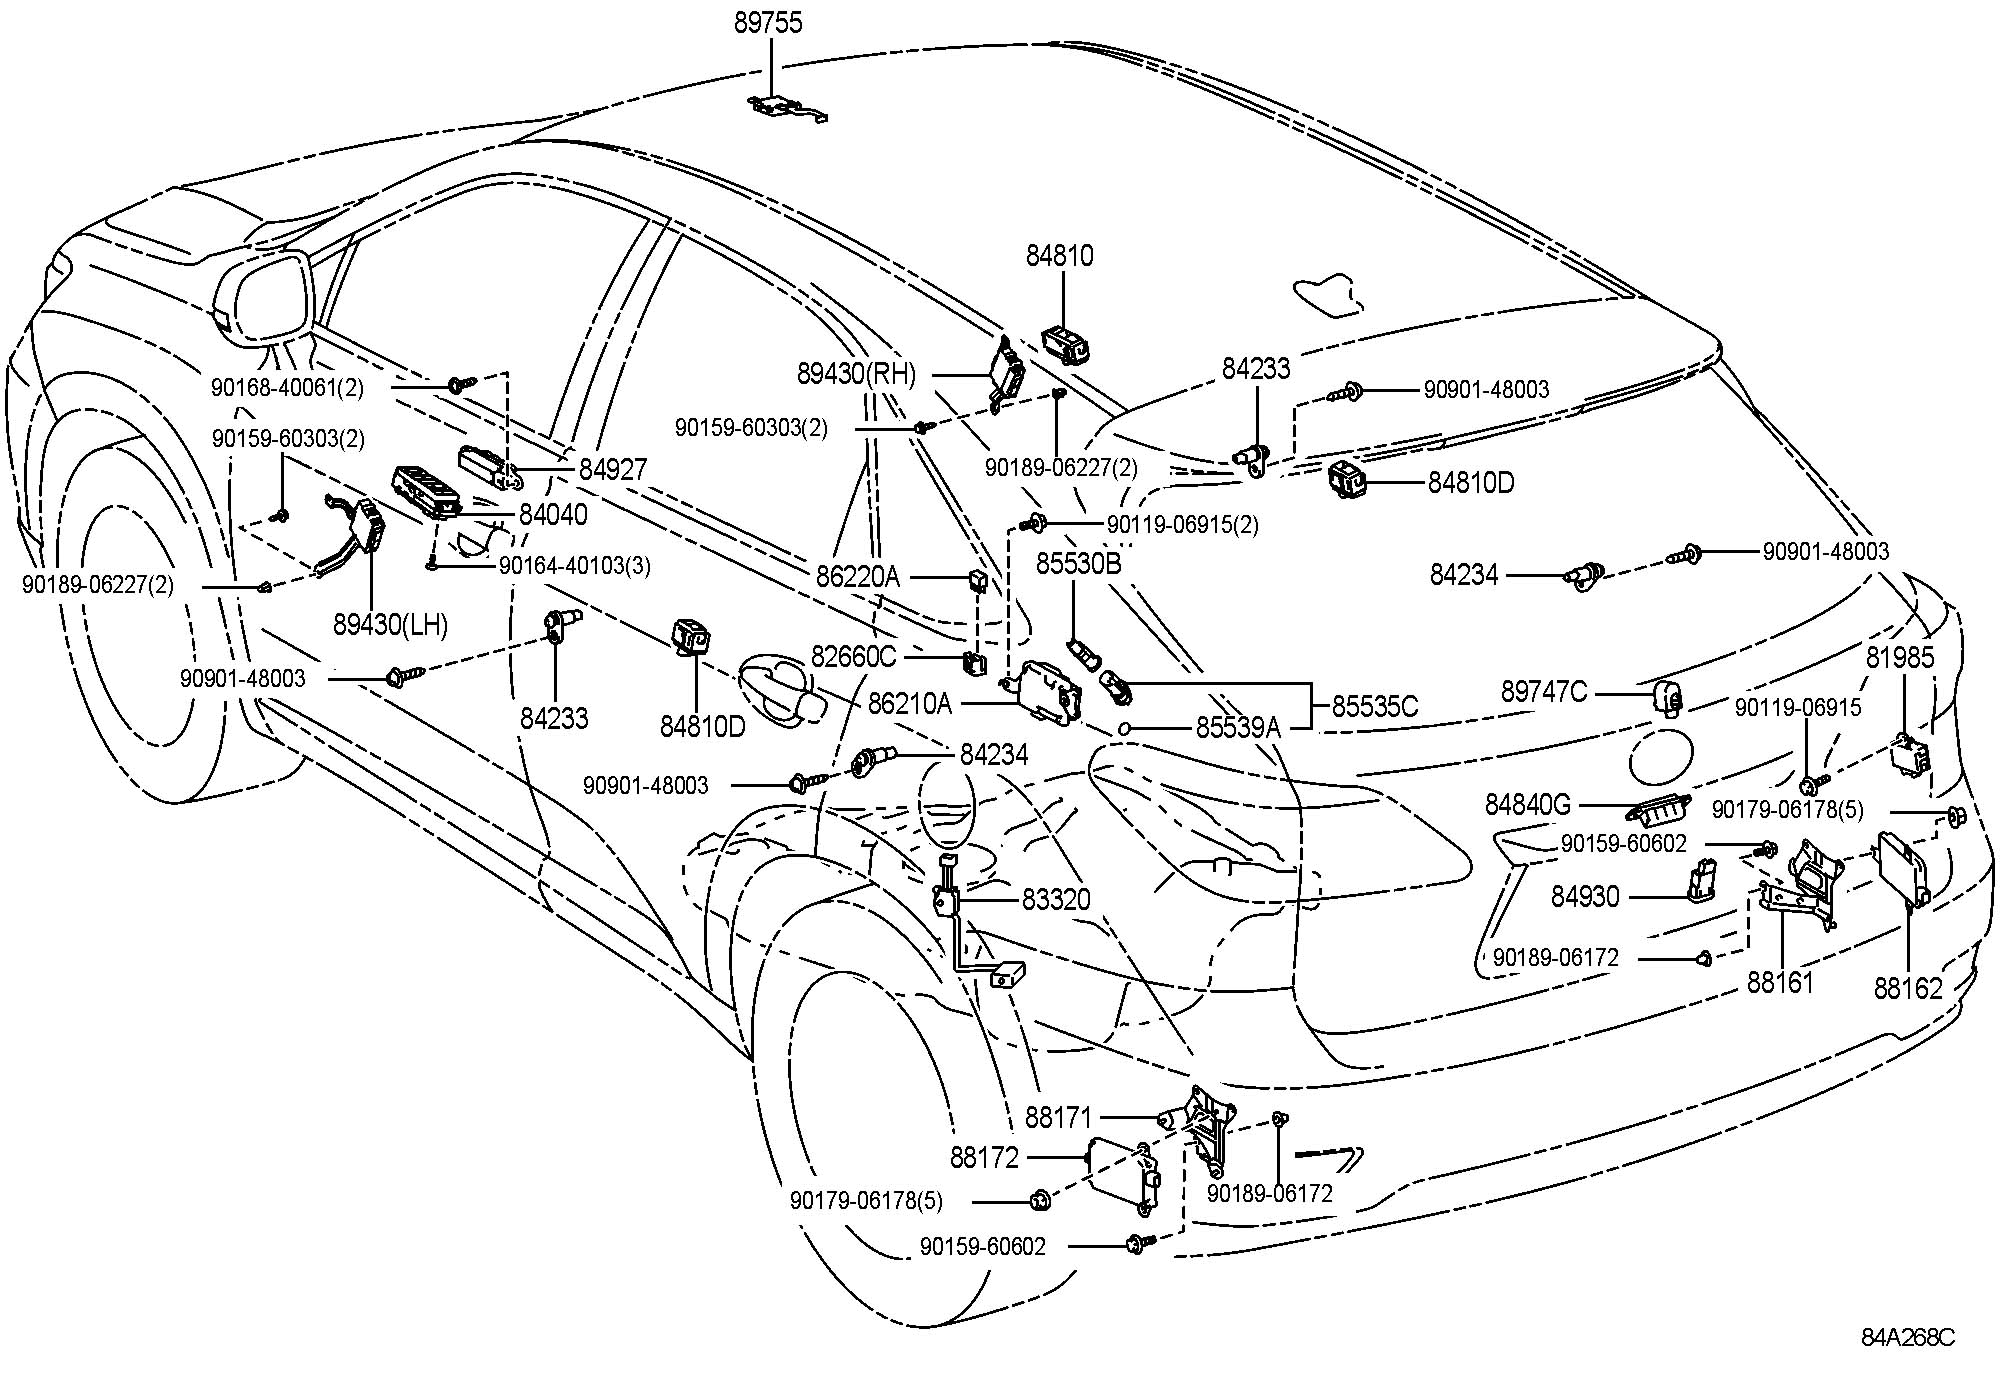 2005 Lexus Is300 Engine Diagram Car Is 300 Fuse Box Source Parts Circuit Symbols